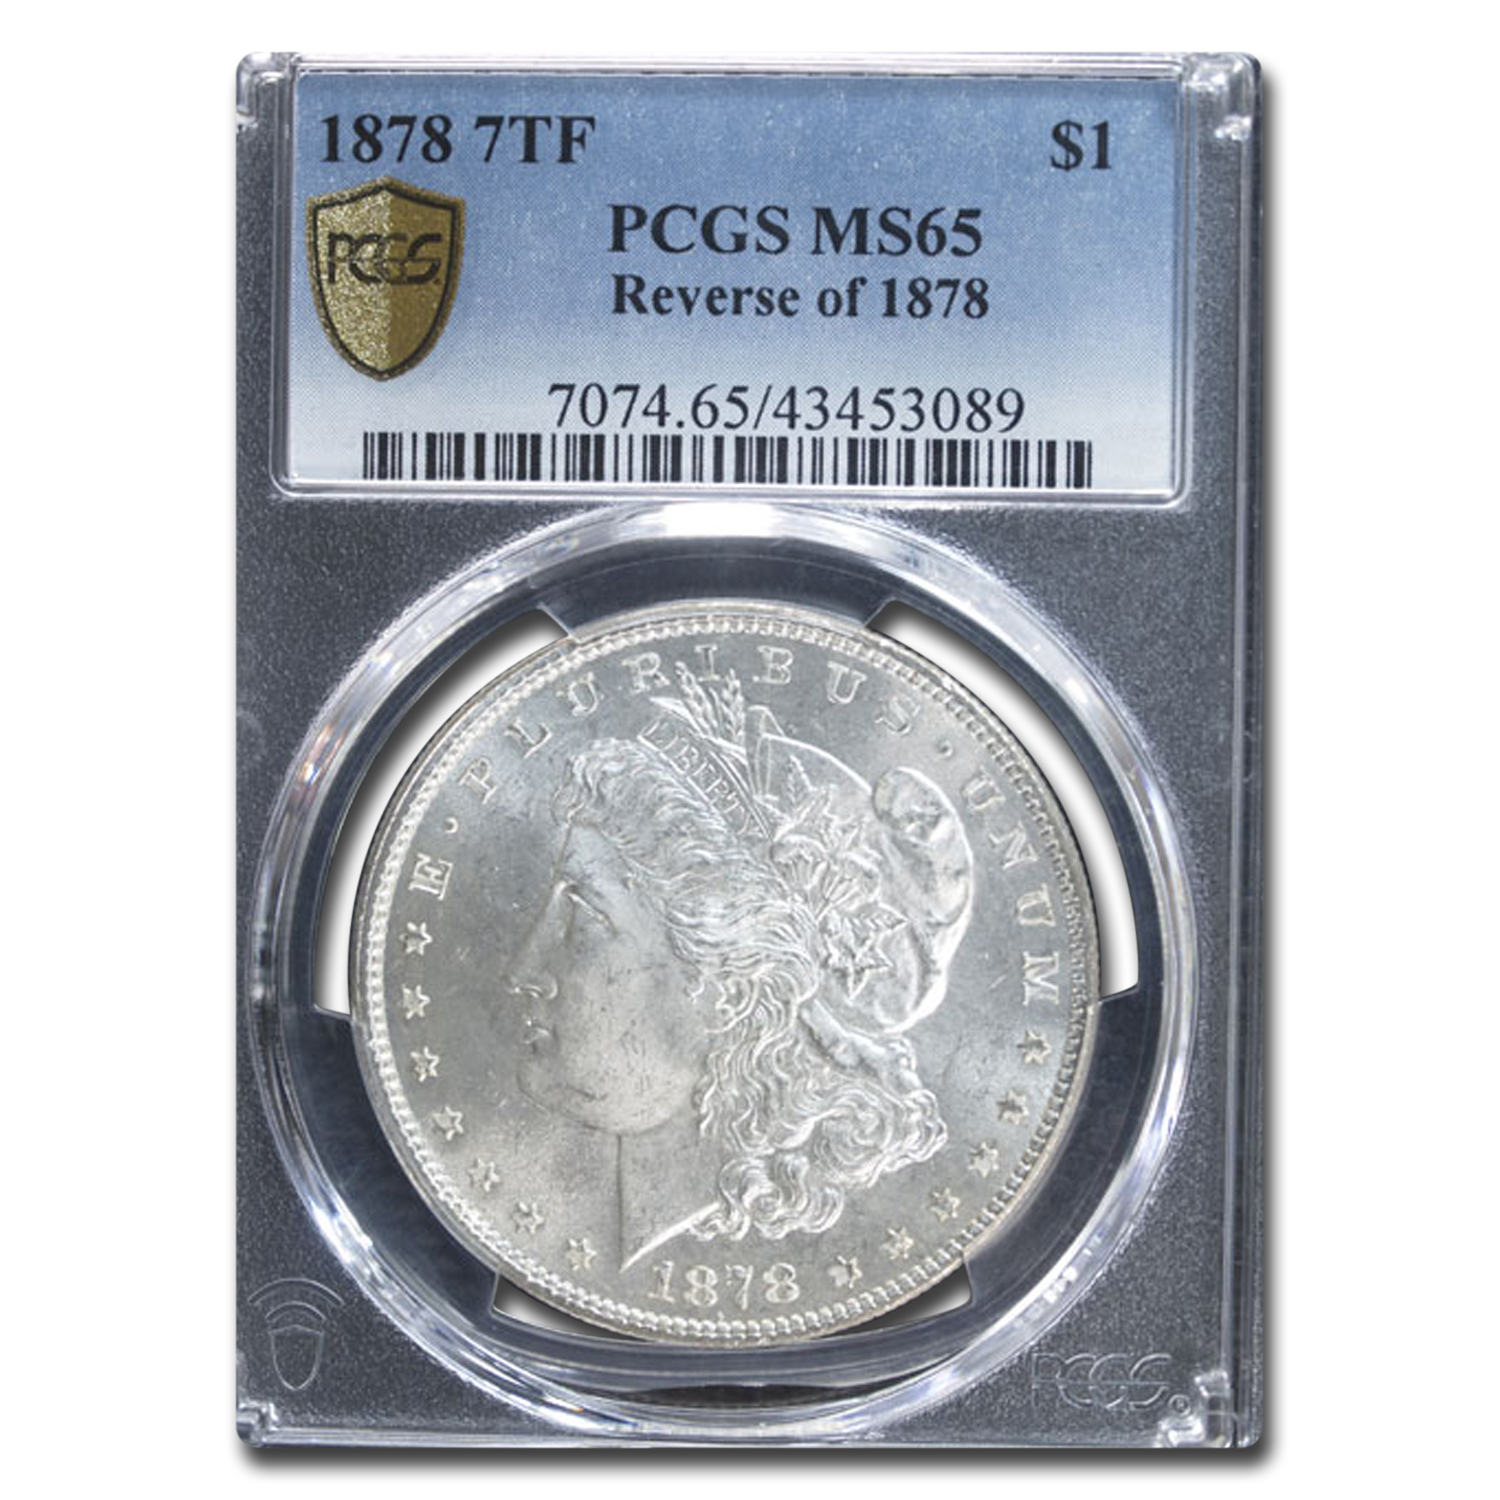 1878 Morgan Dollar 7 Tailfeathers MS-65 PCGS (Rev of '78)